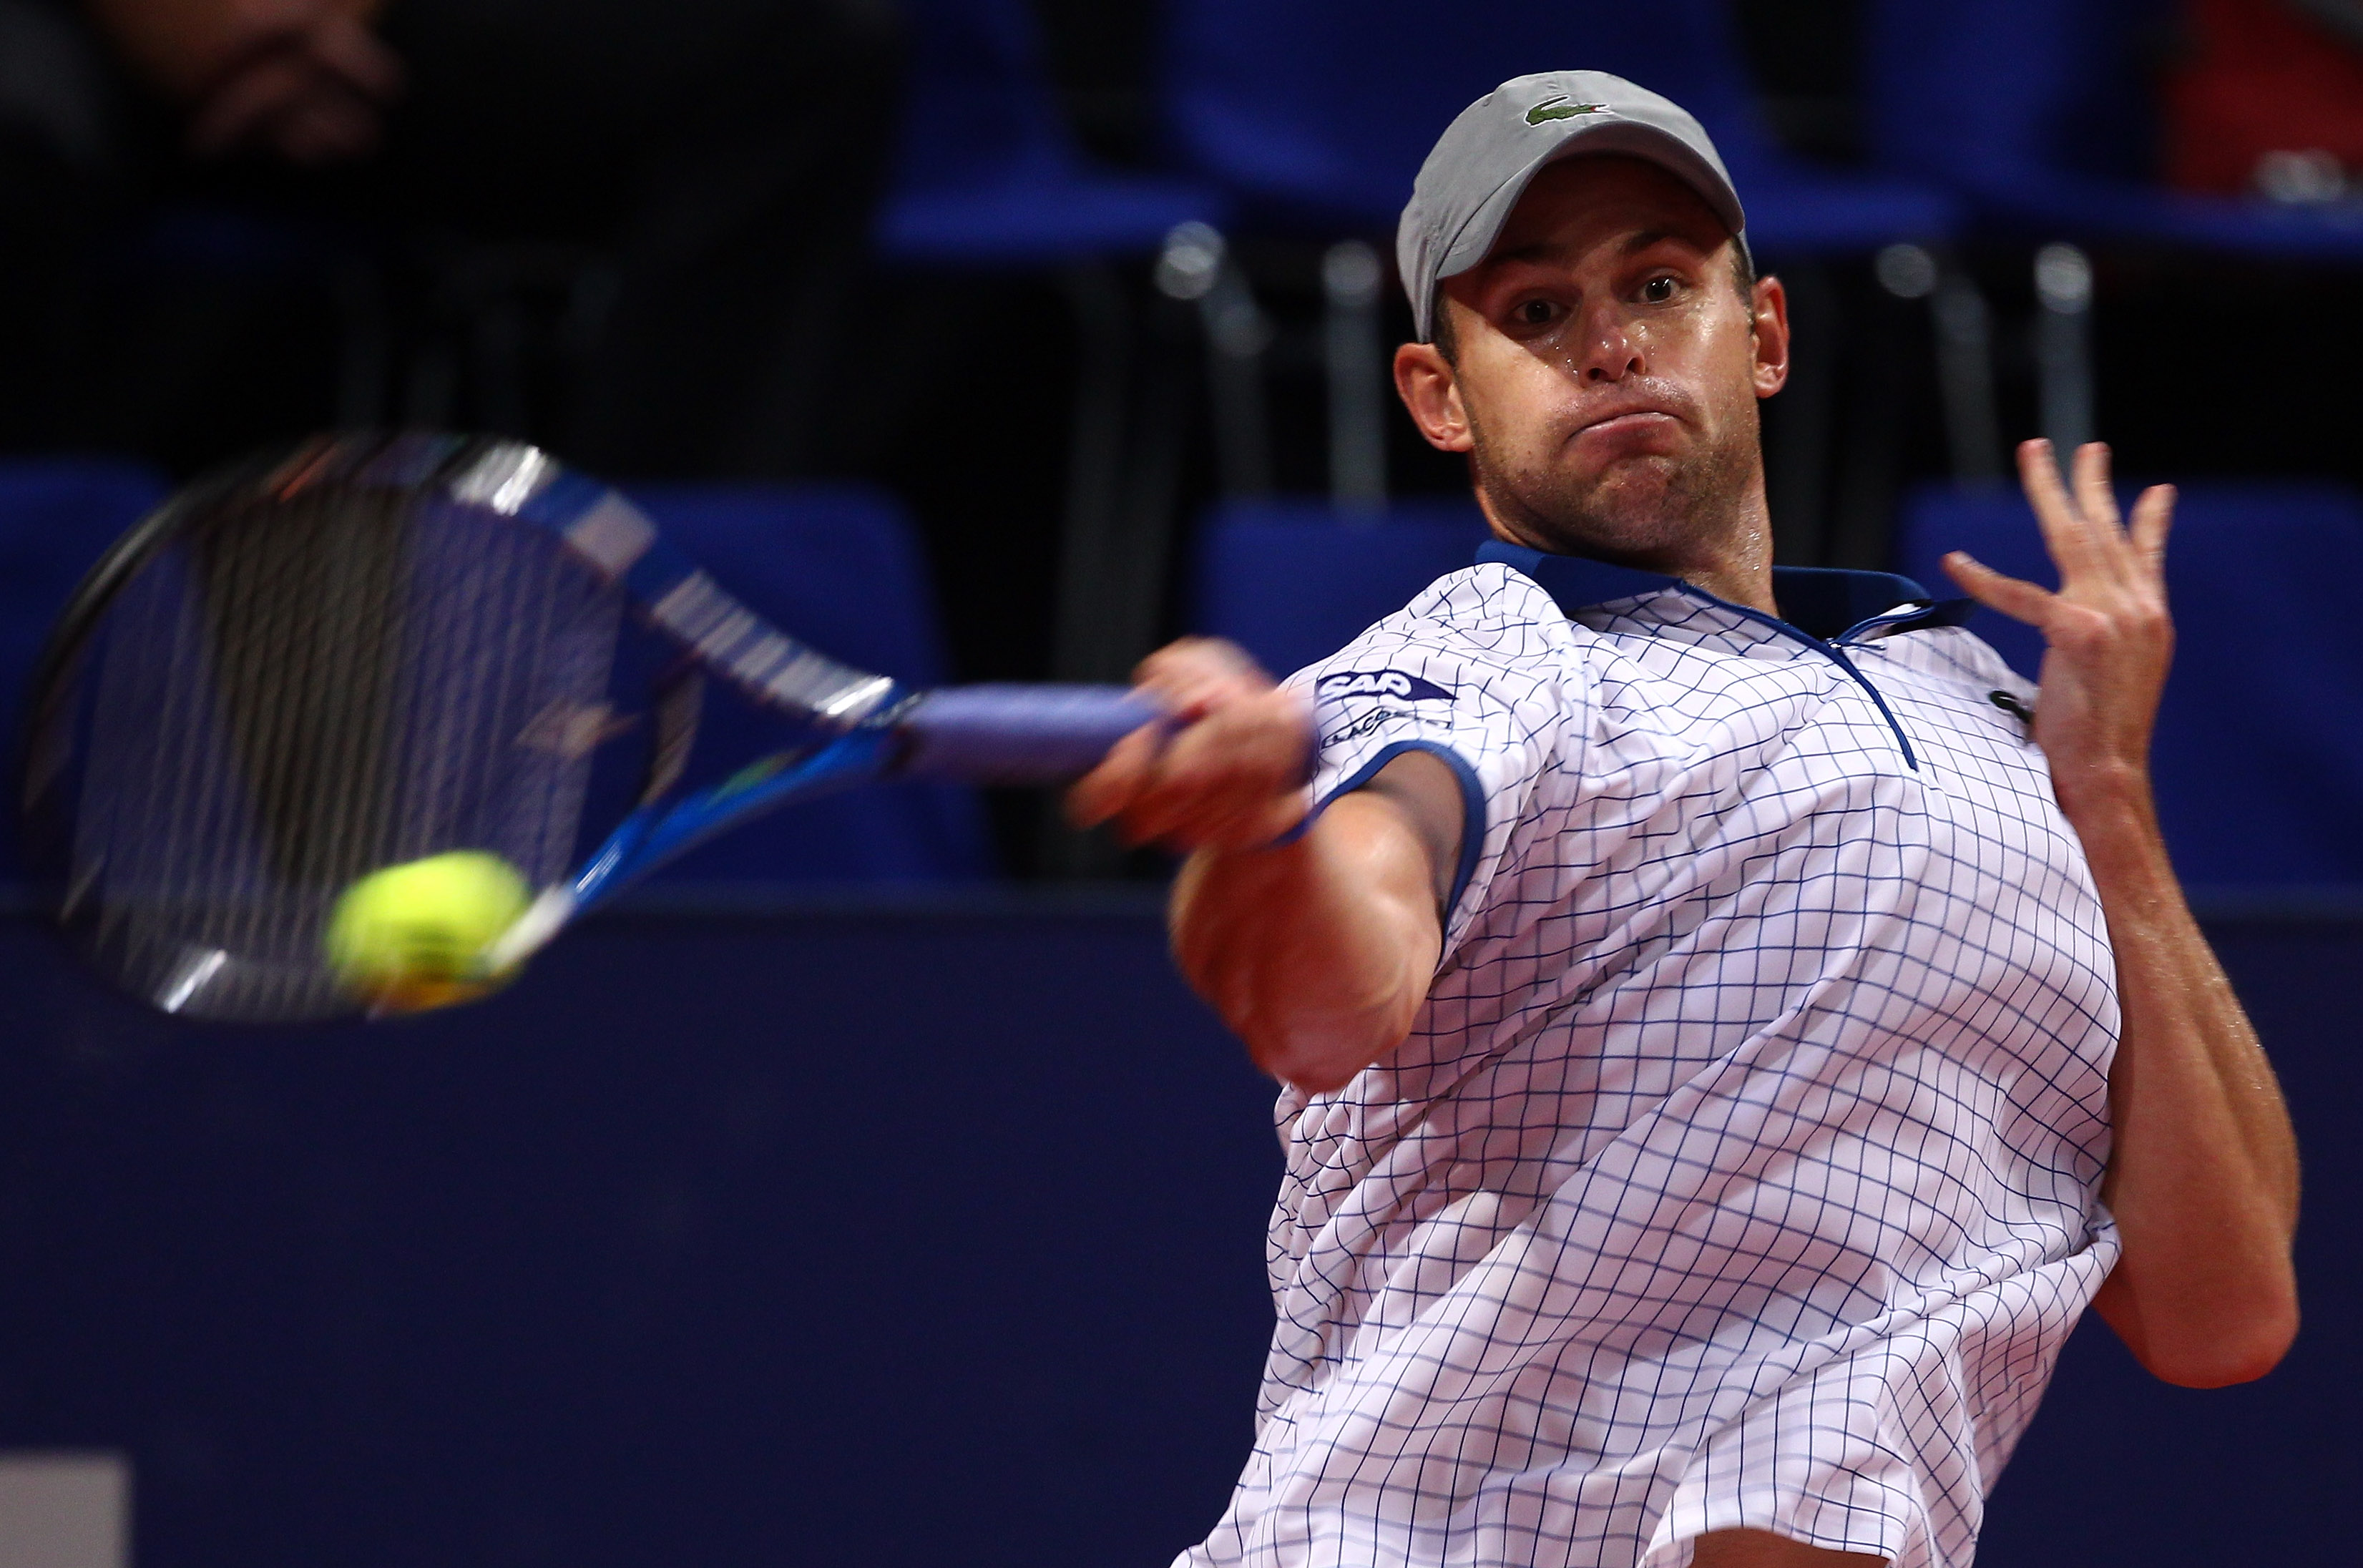 BASEL, SWITZERLAND - NOVEMBER 03:  Andy Roddick of USA plays a forehand in his match against Sam Querrey of USA during Day Three of the Davidoff Swiss Indoors Tennis at St Jakobshalle on November 3, 2010 in Basel, Switzerland.  (Photo by Julian Finney/Get